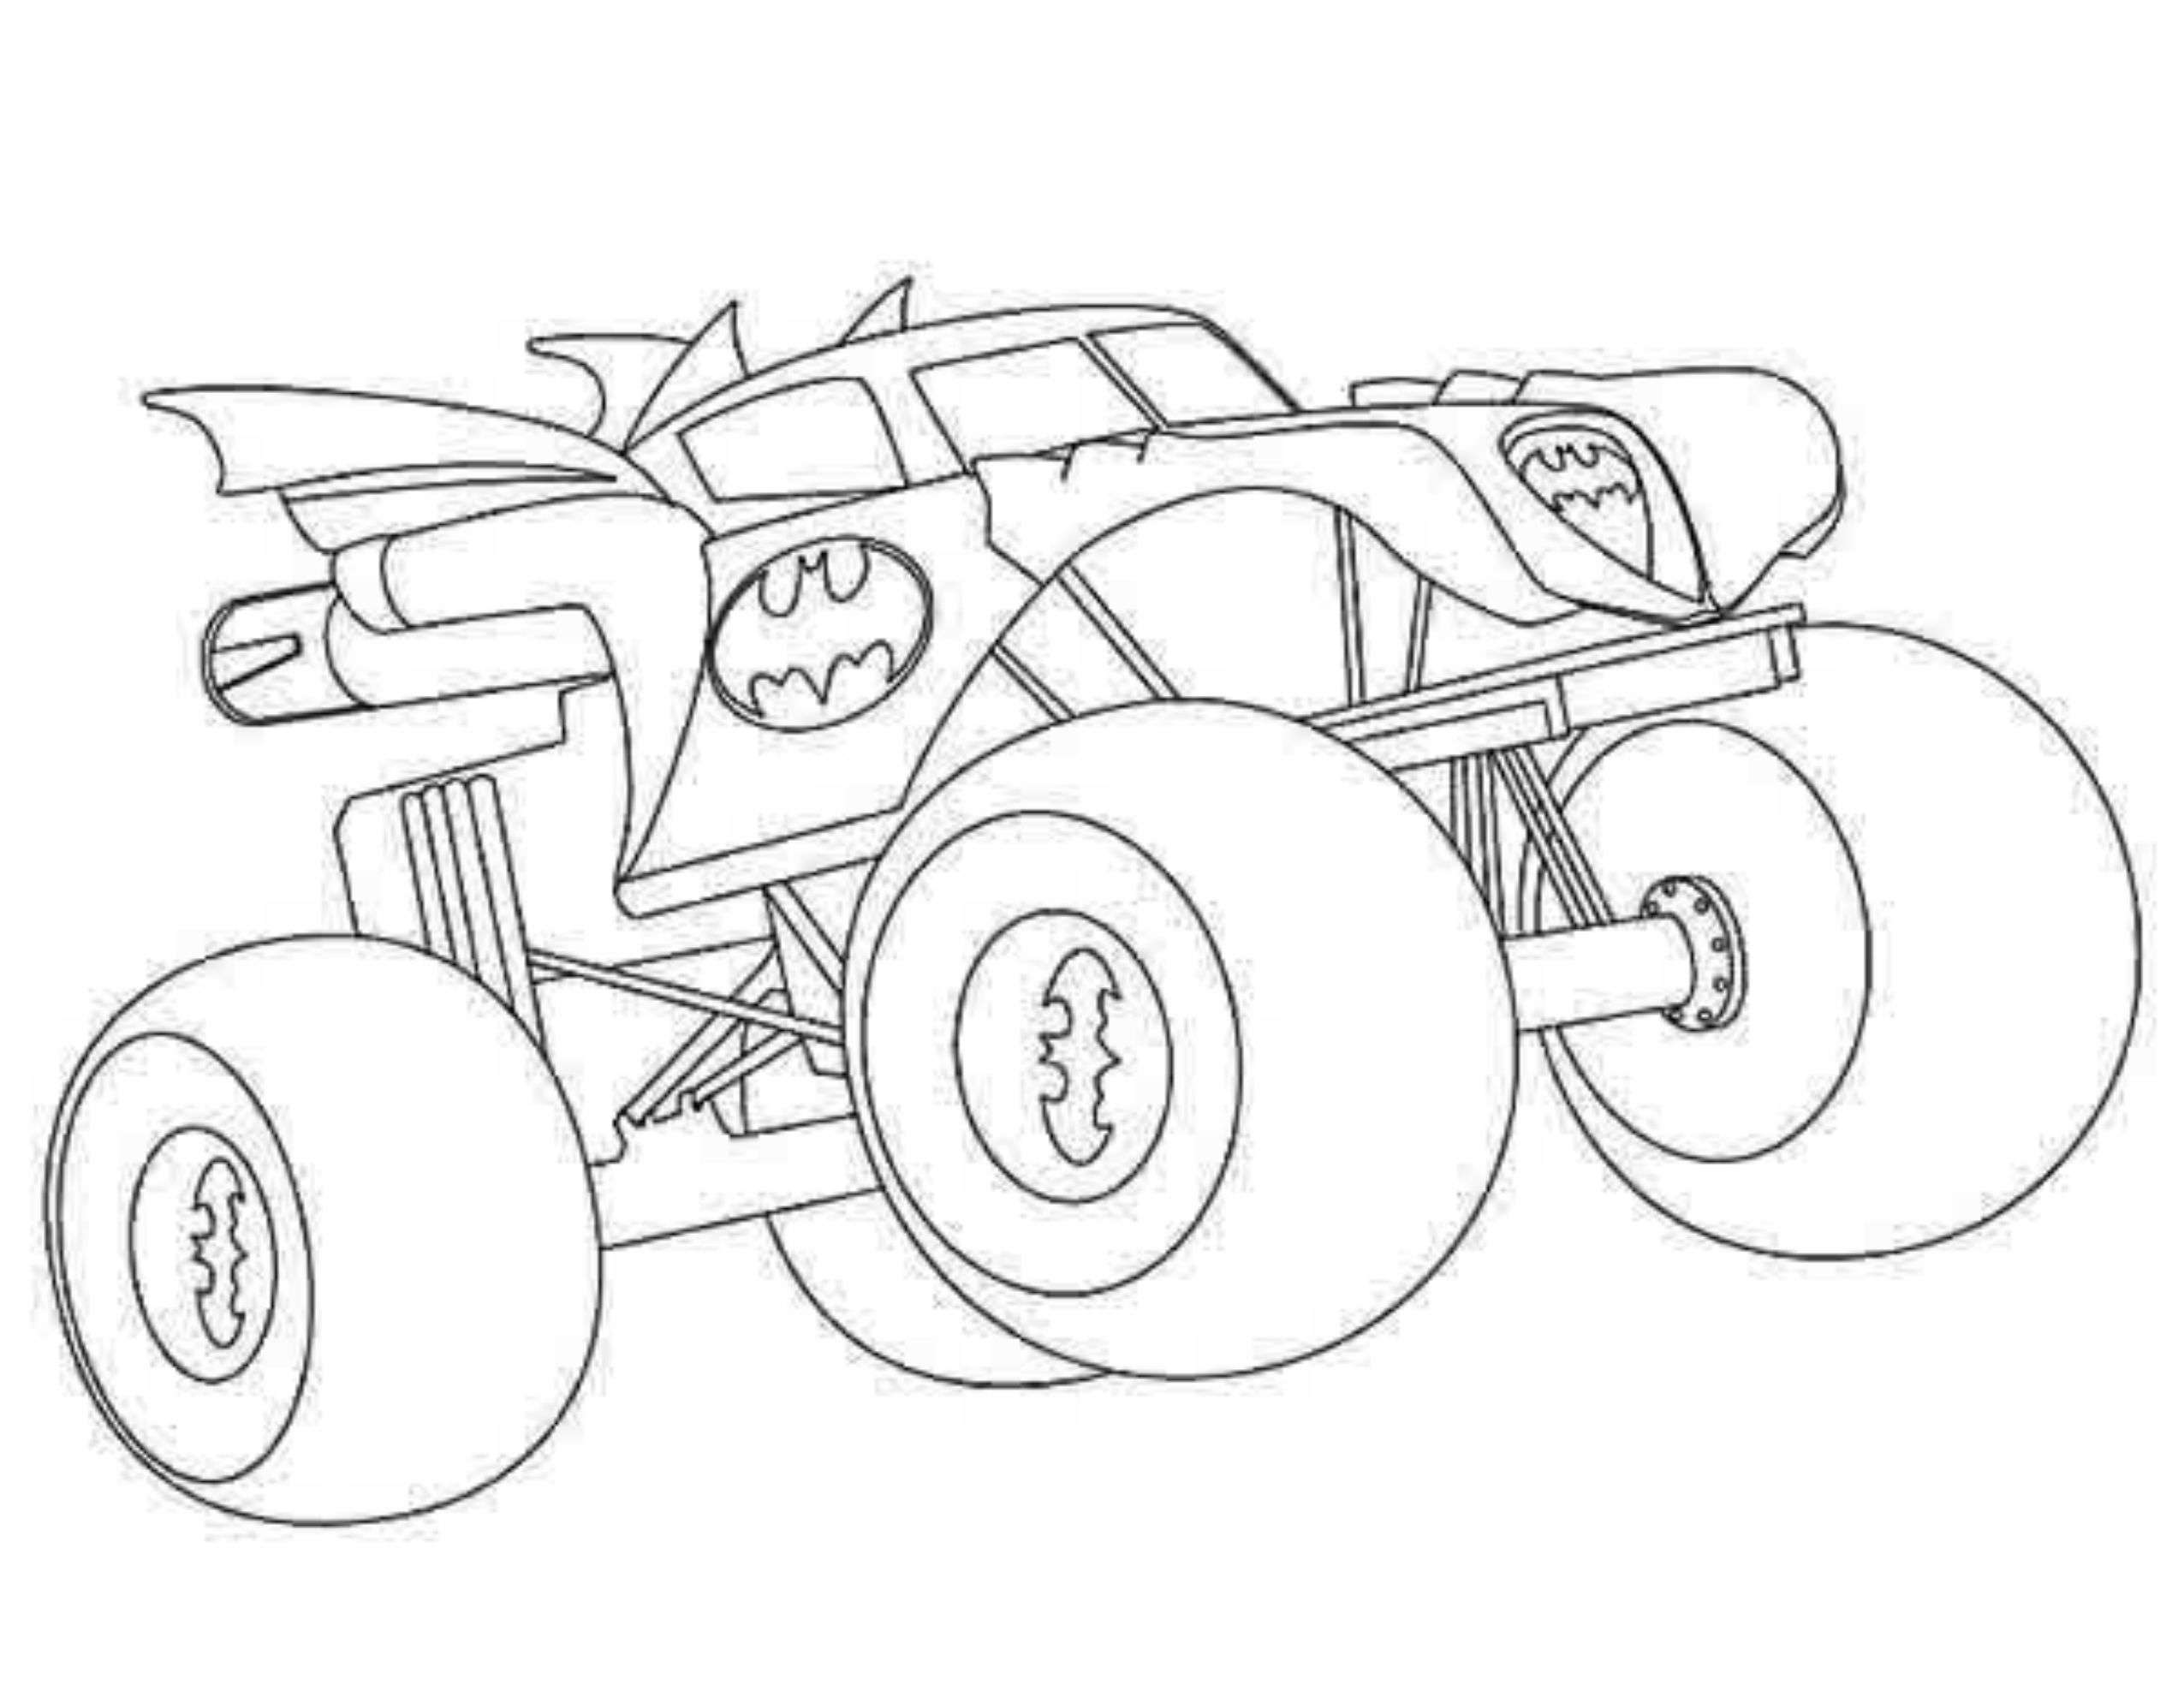 Free coloring pages trucks and cars - Free Monster Jam Monster Truck Coloring Pages With Monster Jam